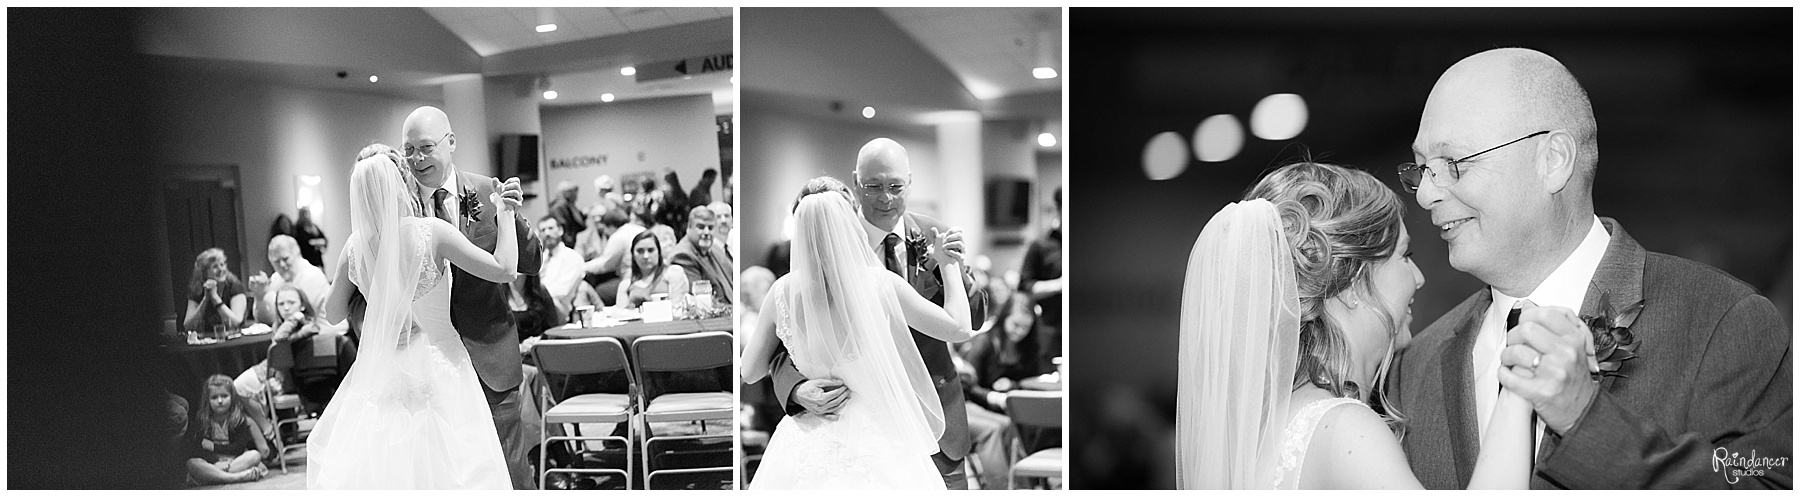 Bride dancing with her father by Raindancer Studios Indianapolis Wedding Photographer Jill Howell